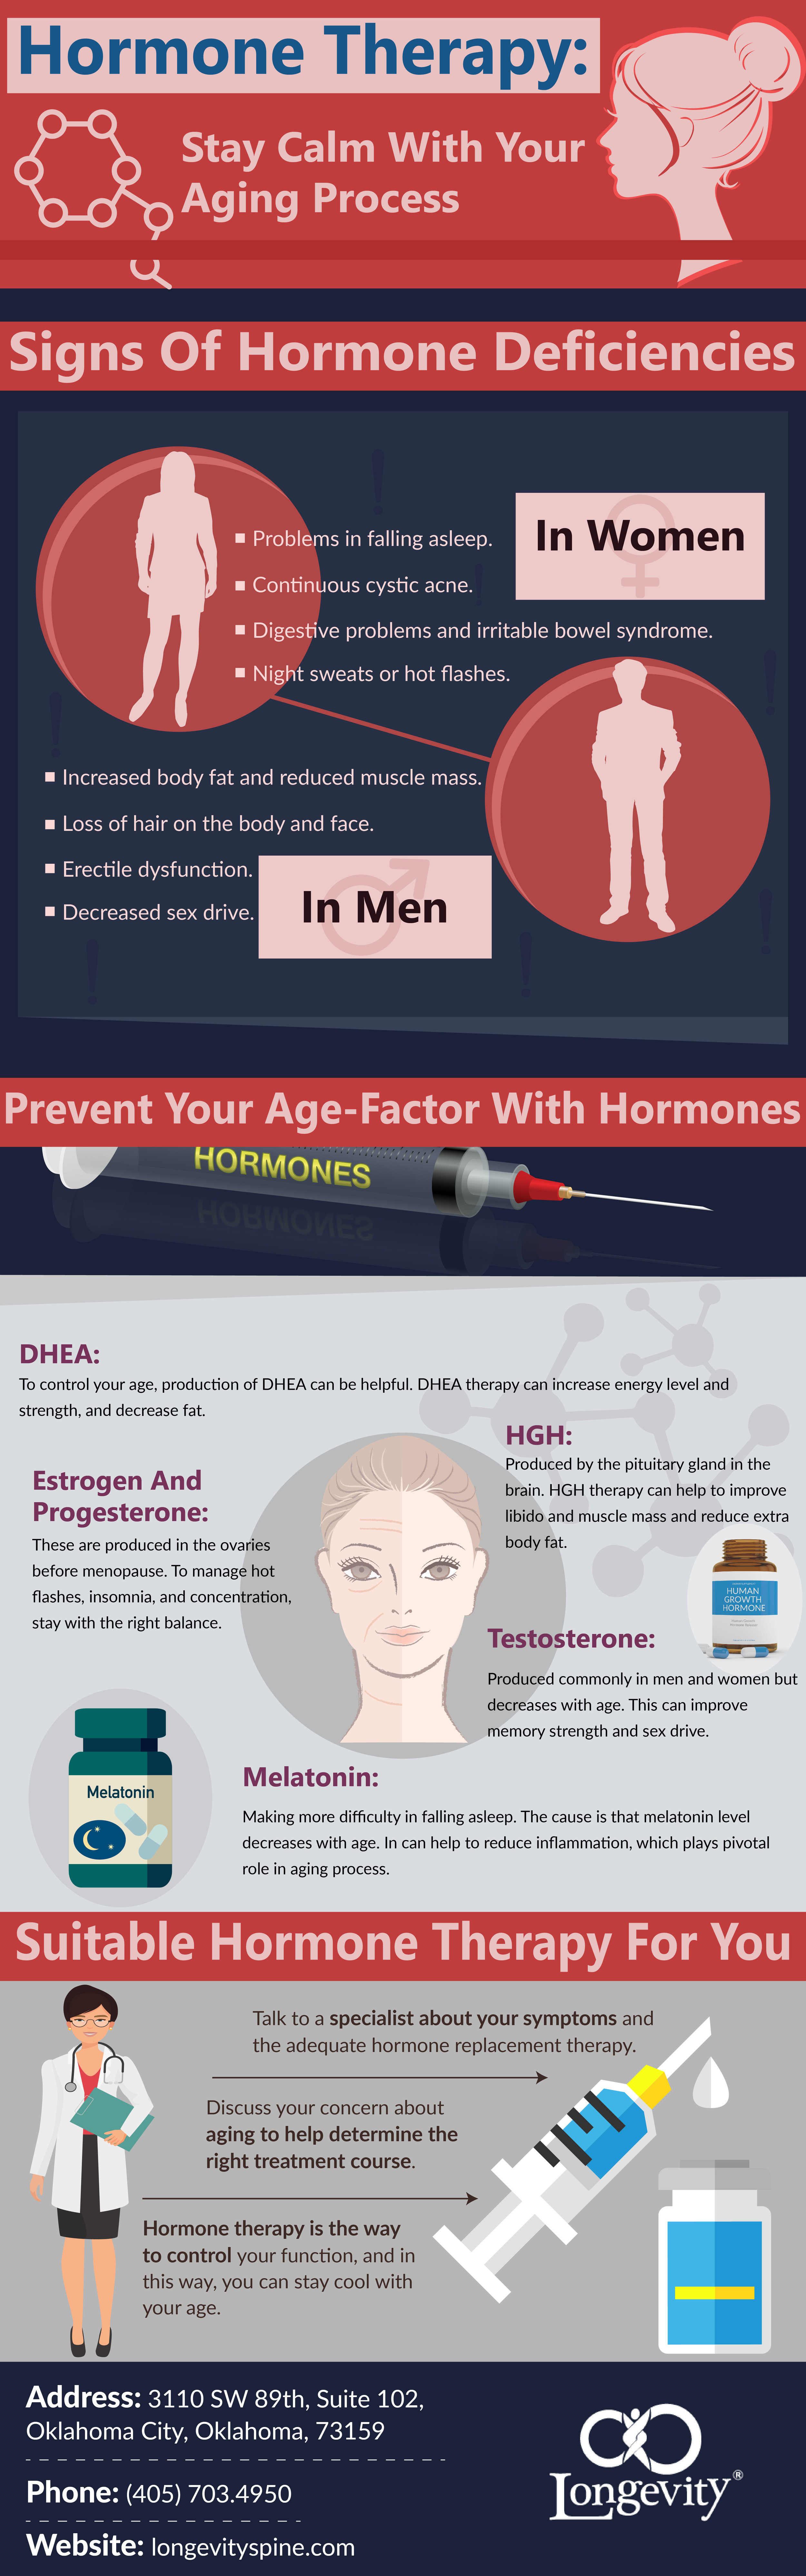 Hormone Therapy: Stay Calm With Your Aging Process